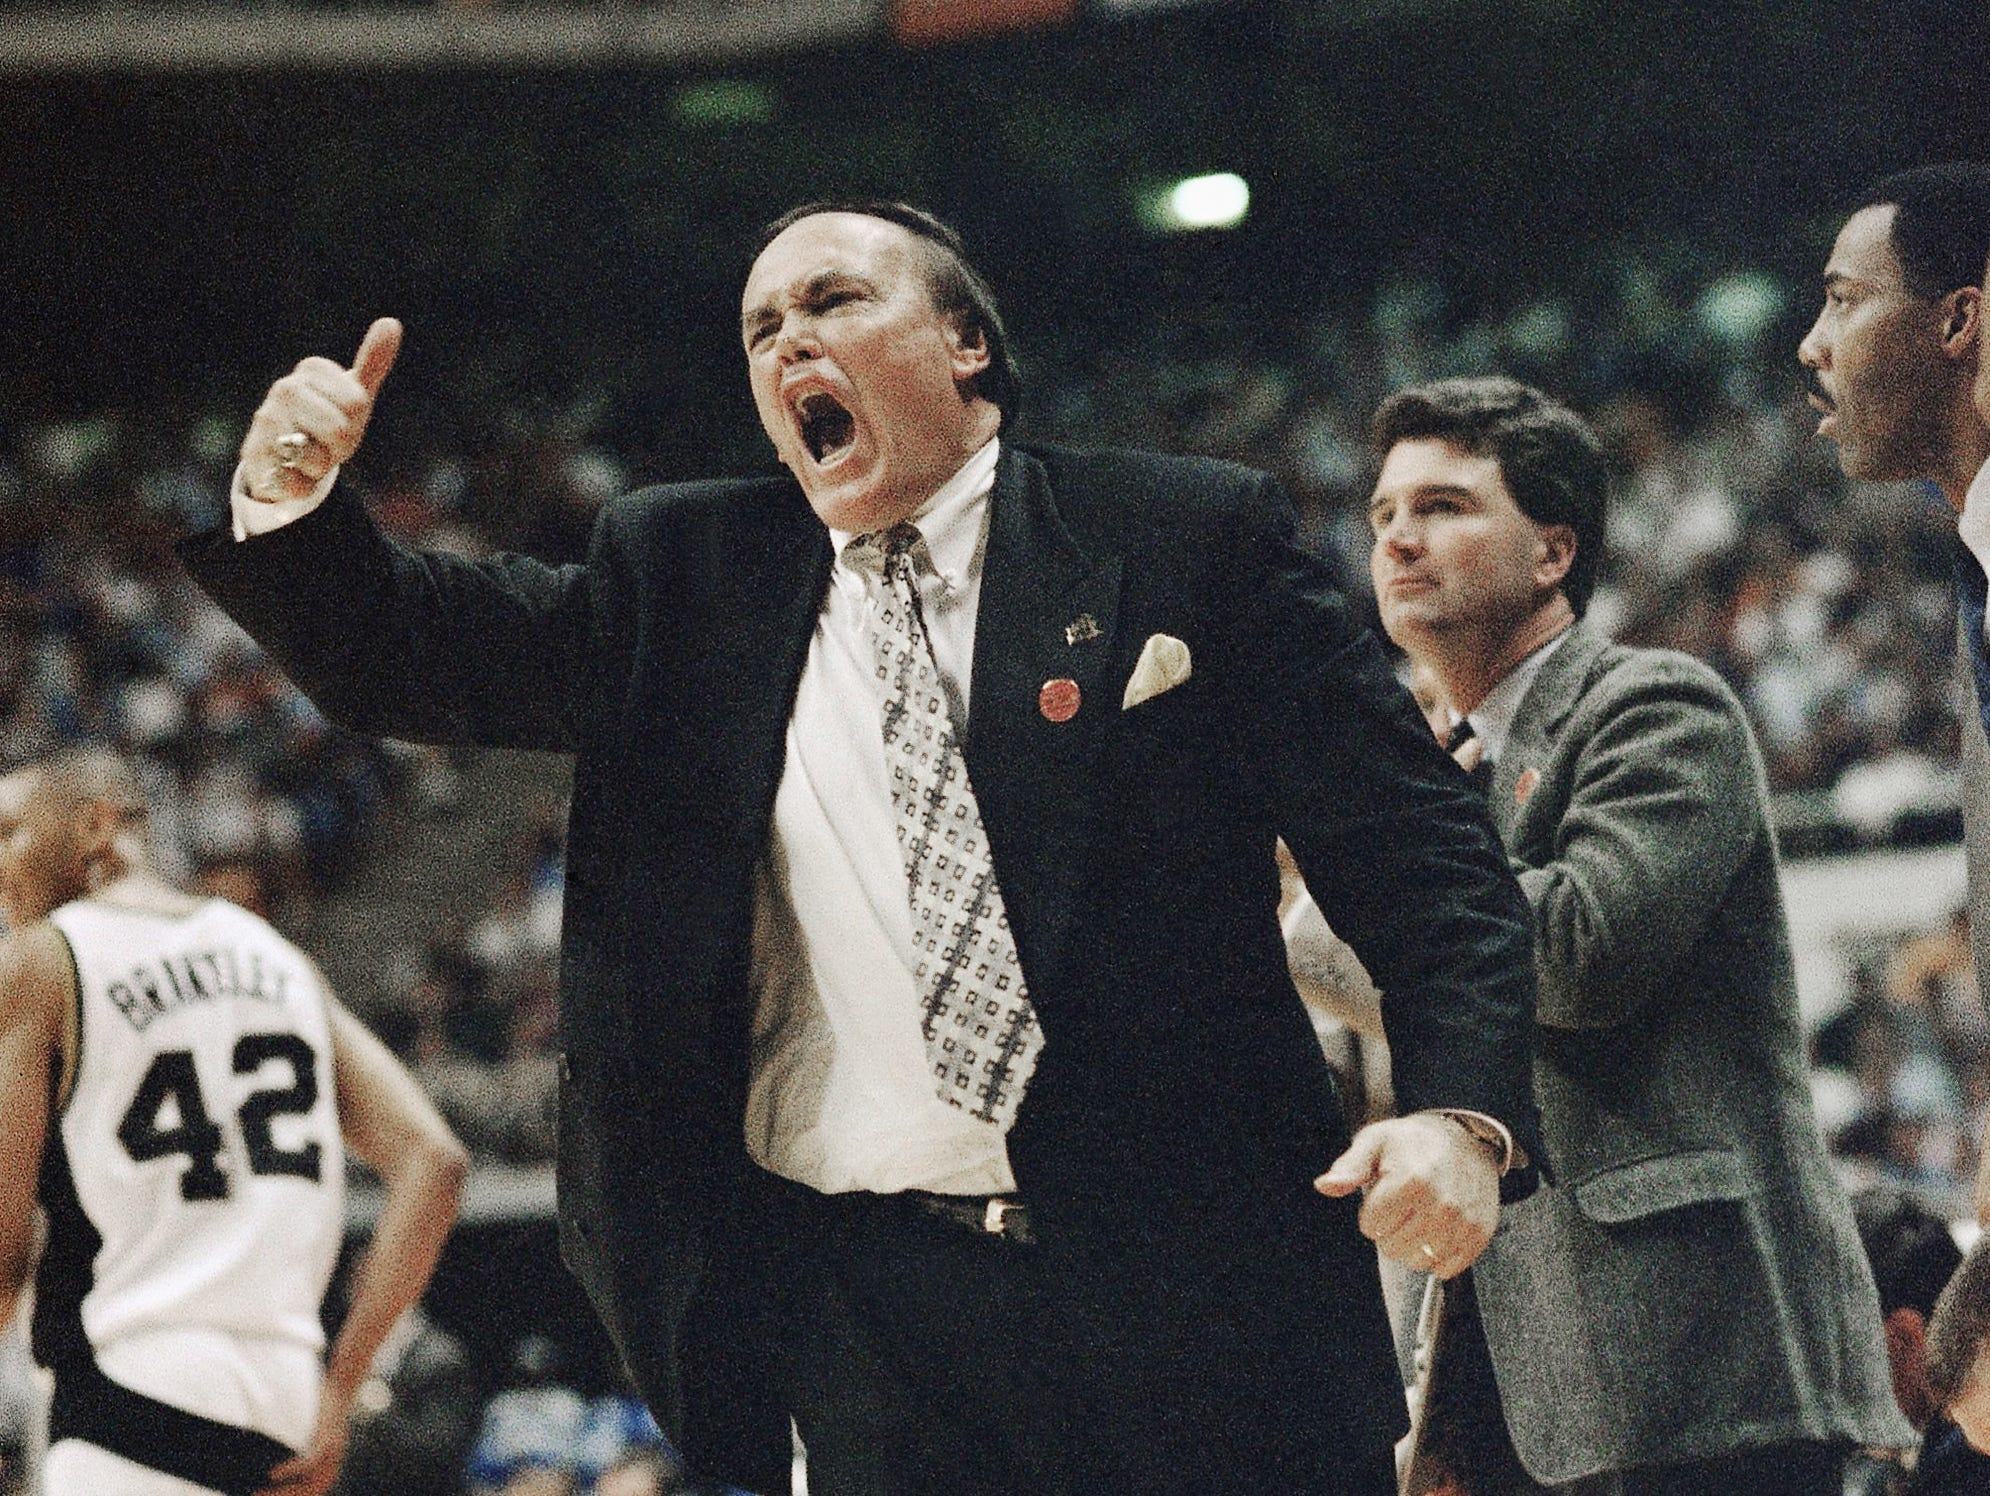 Purdue coach Gene Keady shouts from the bench during NCAA Southeast Regional semi-final game against Kansas, on Thursday, March 24, 1994, in Knoxville, Tenn. Purdue defeated Kansas 83-78. (AP Photo/Bob Jordan)